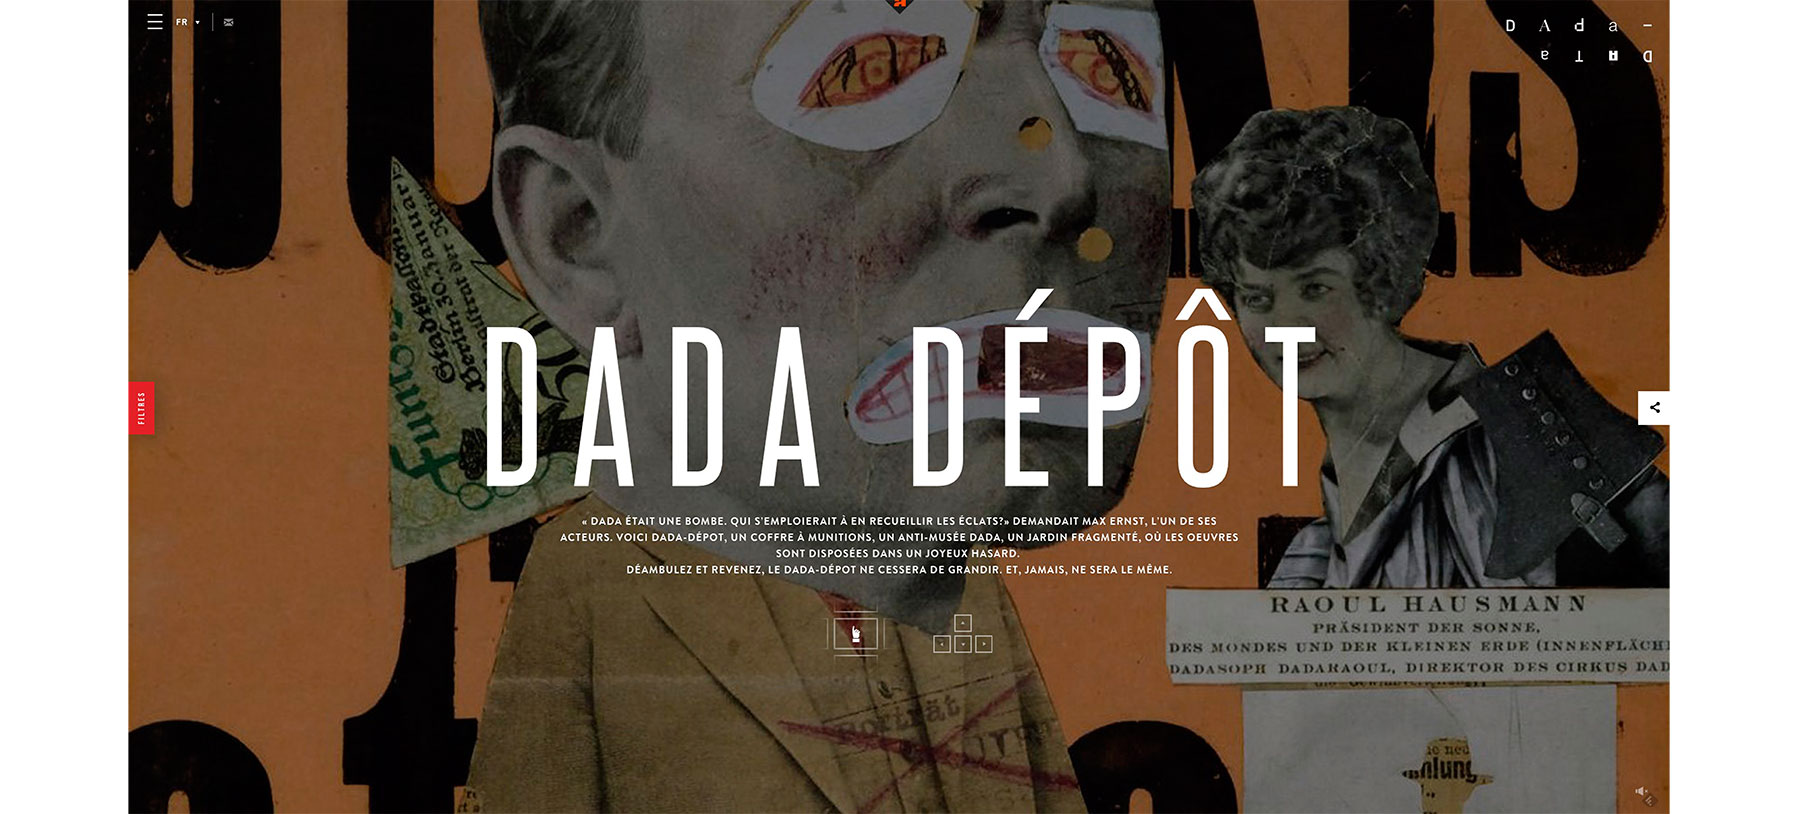 dada-data-site-interactif-arte-capture-depot